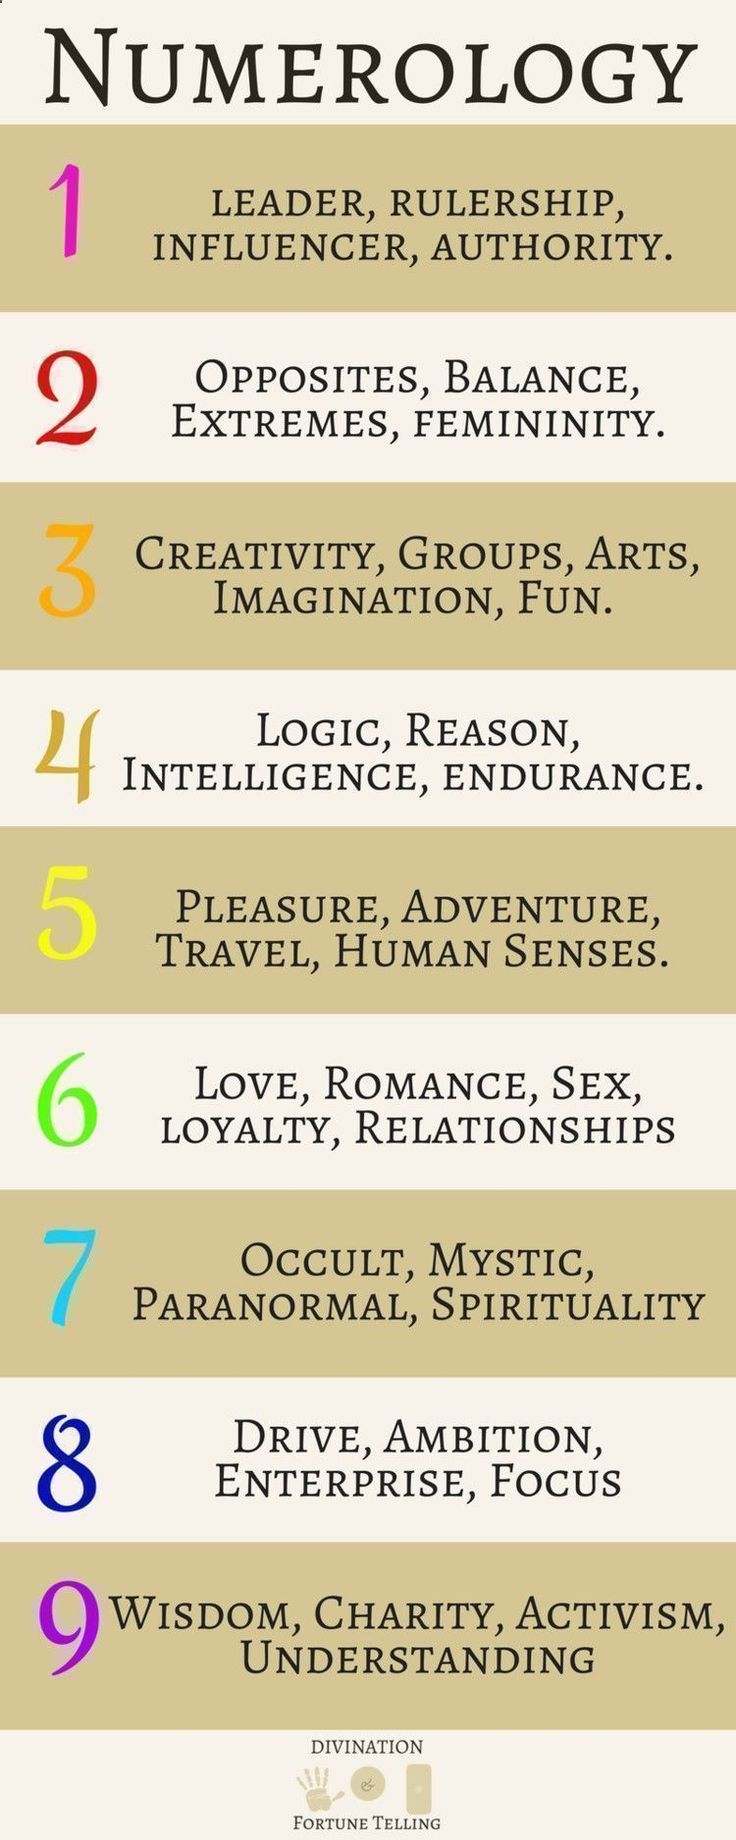 15643 best numerology images on pinterest numerology chart numerology spirituality illustration post showing the life path meanings of numbers in numerology divination this post includes how to make the nvjuhfo Image collections